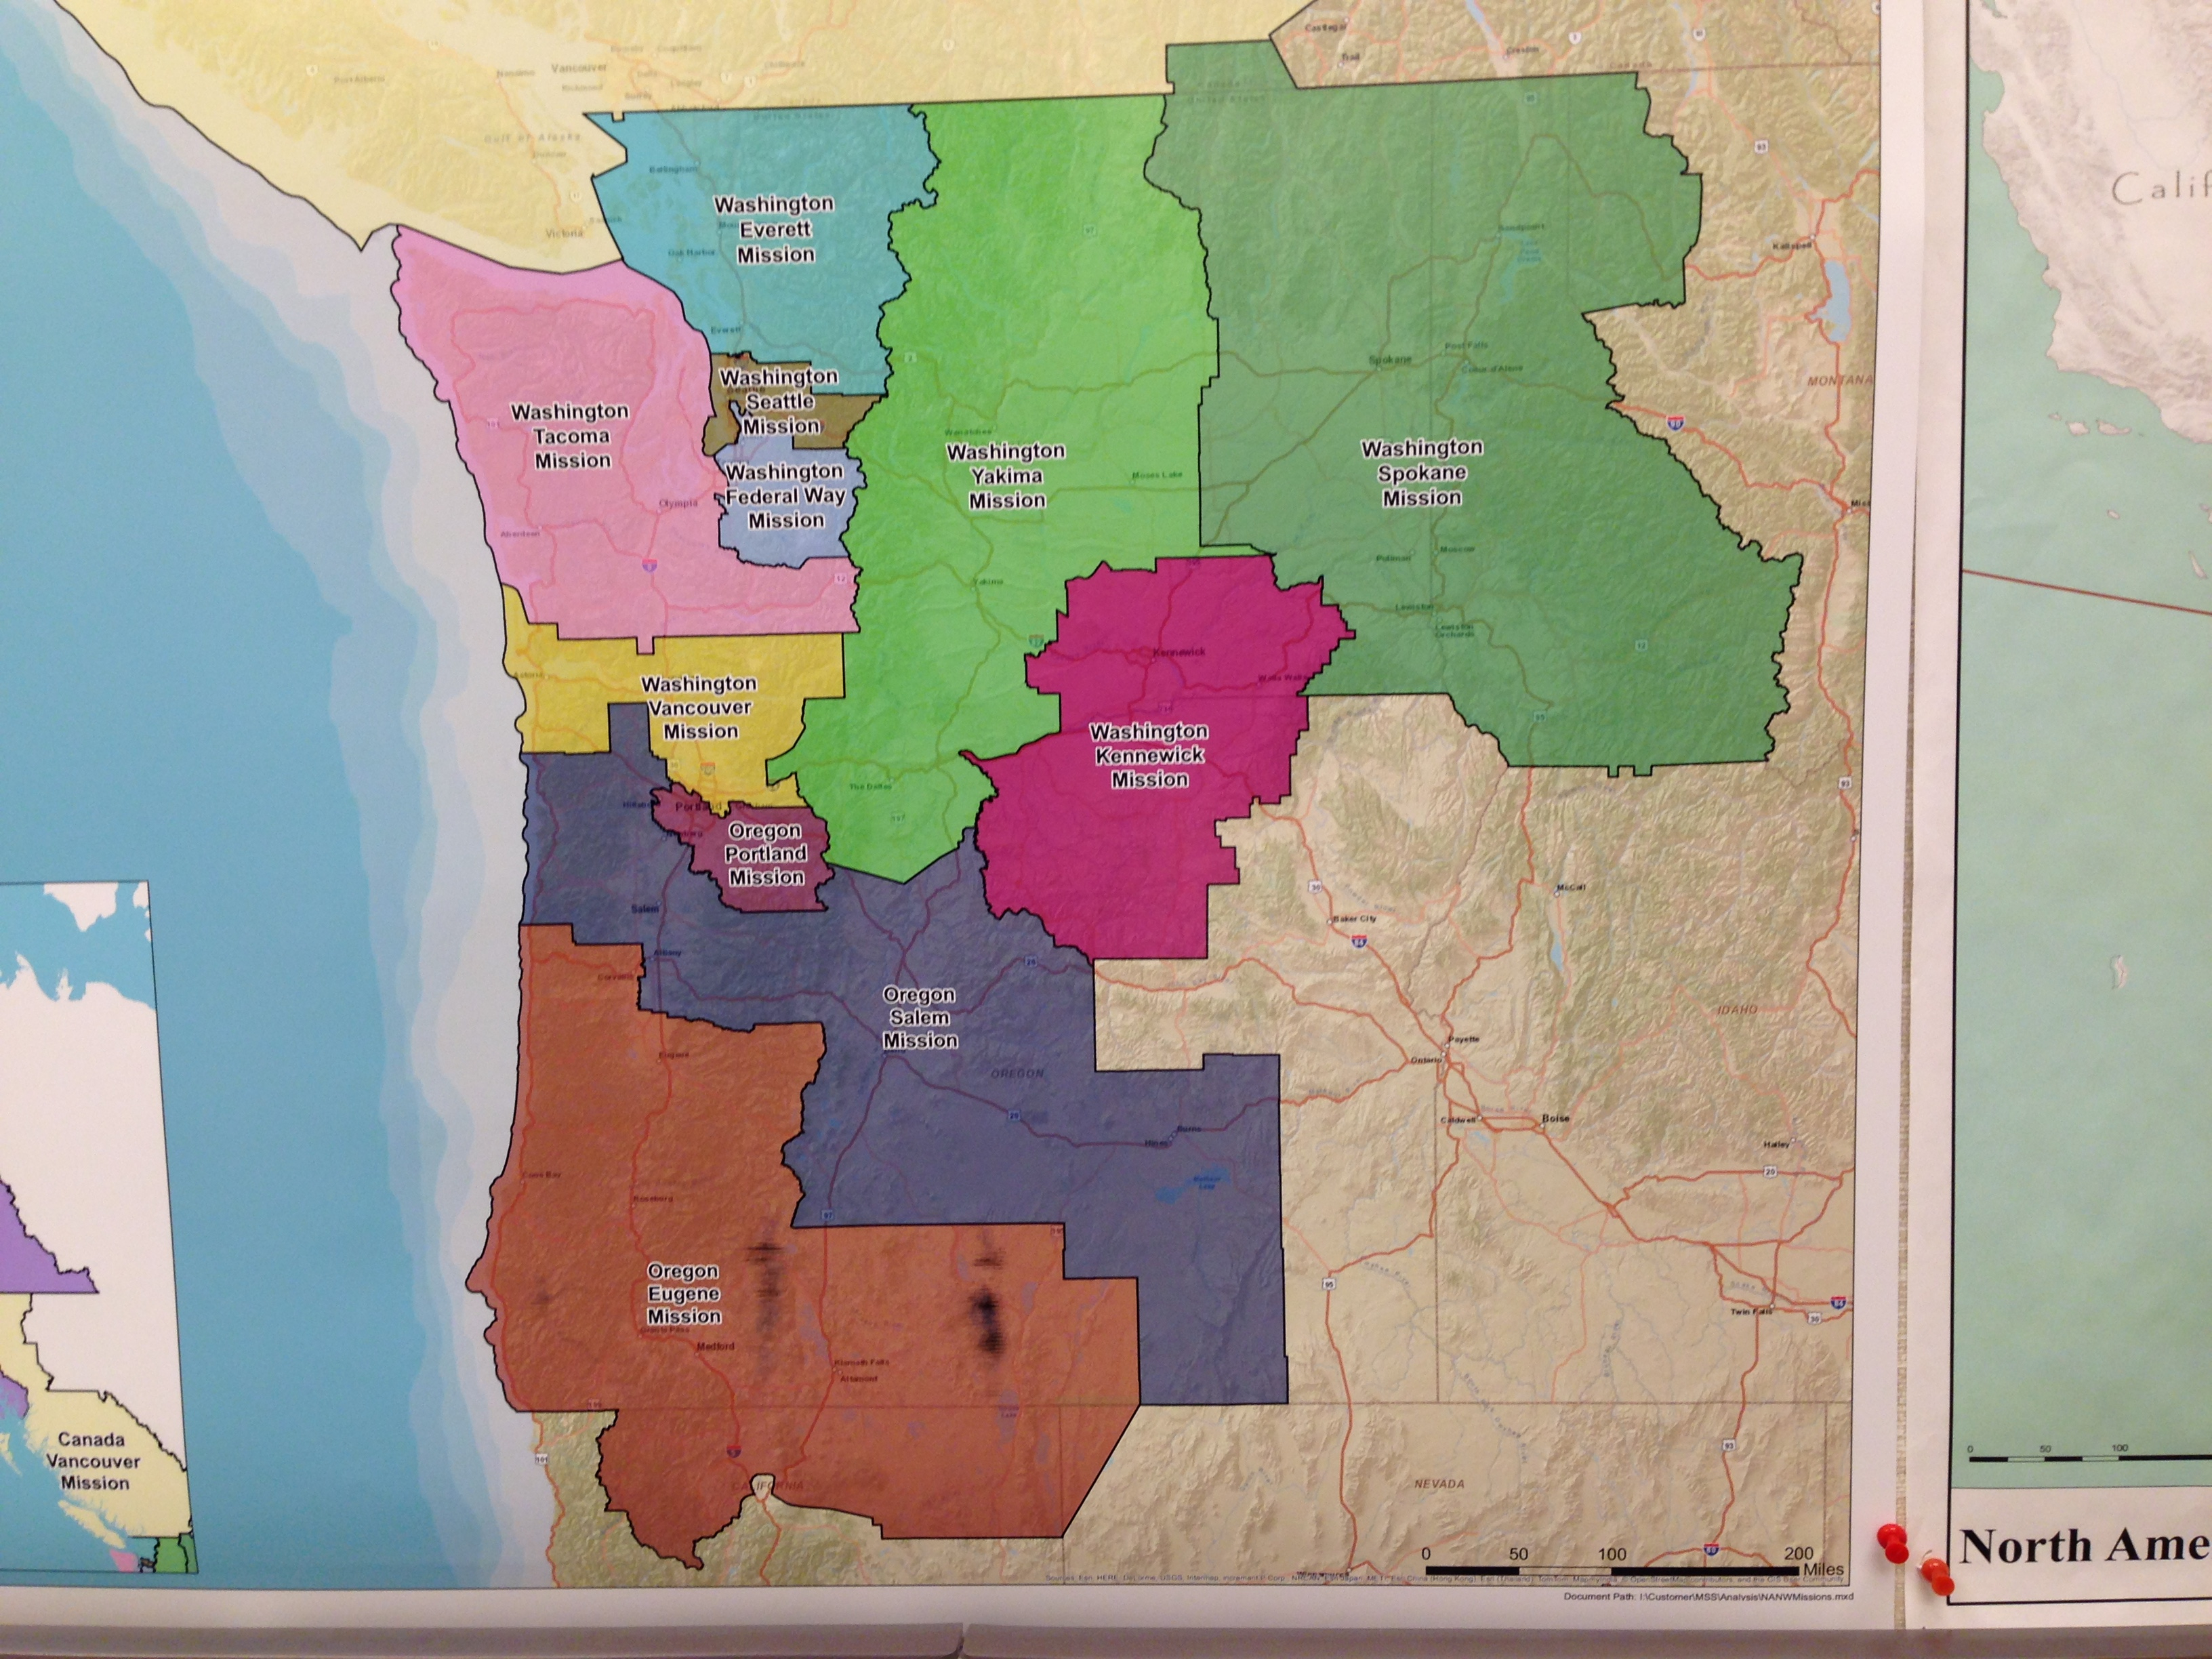 Lds Missions In Washington And Our Mission Home | Ann's Words - California Lds Missions Map